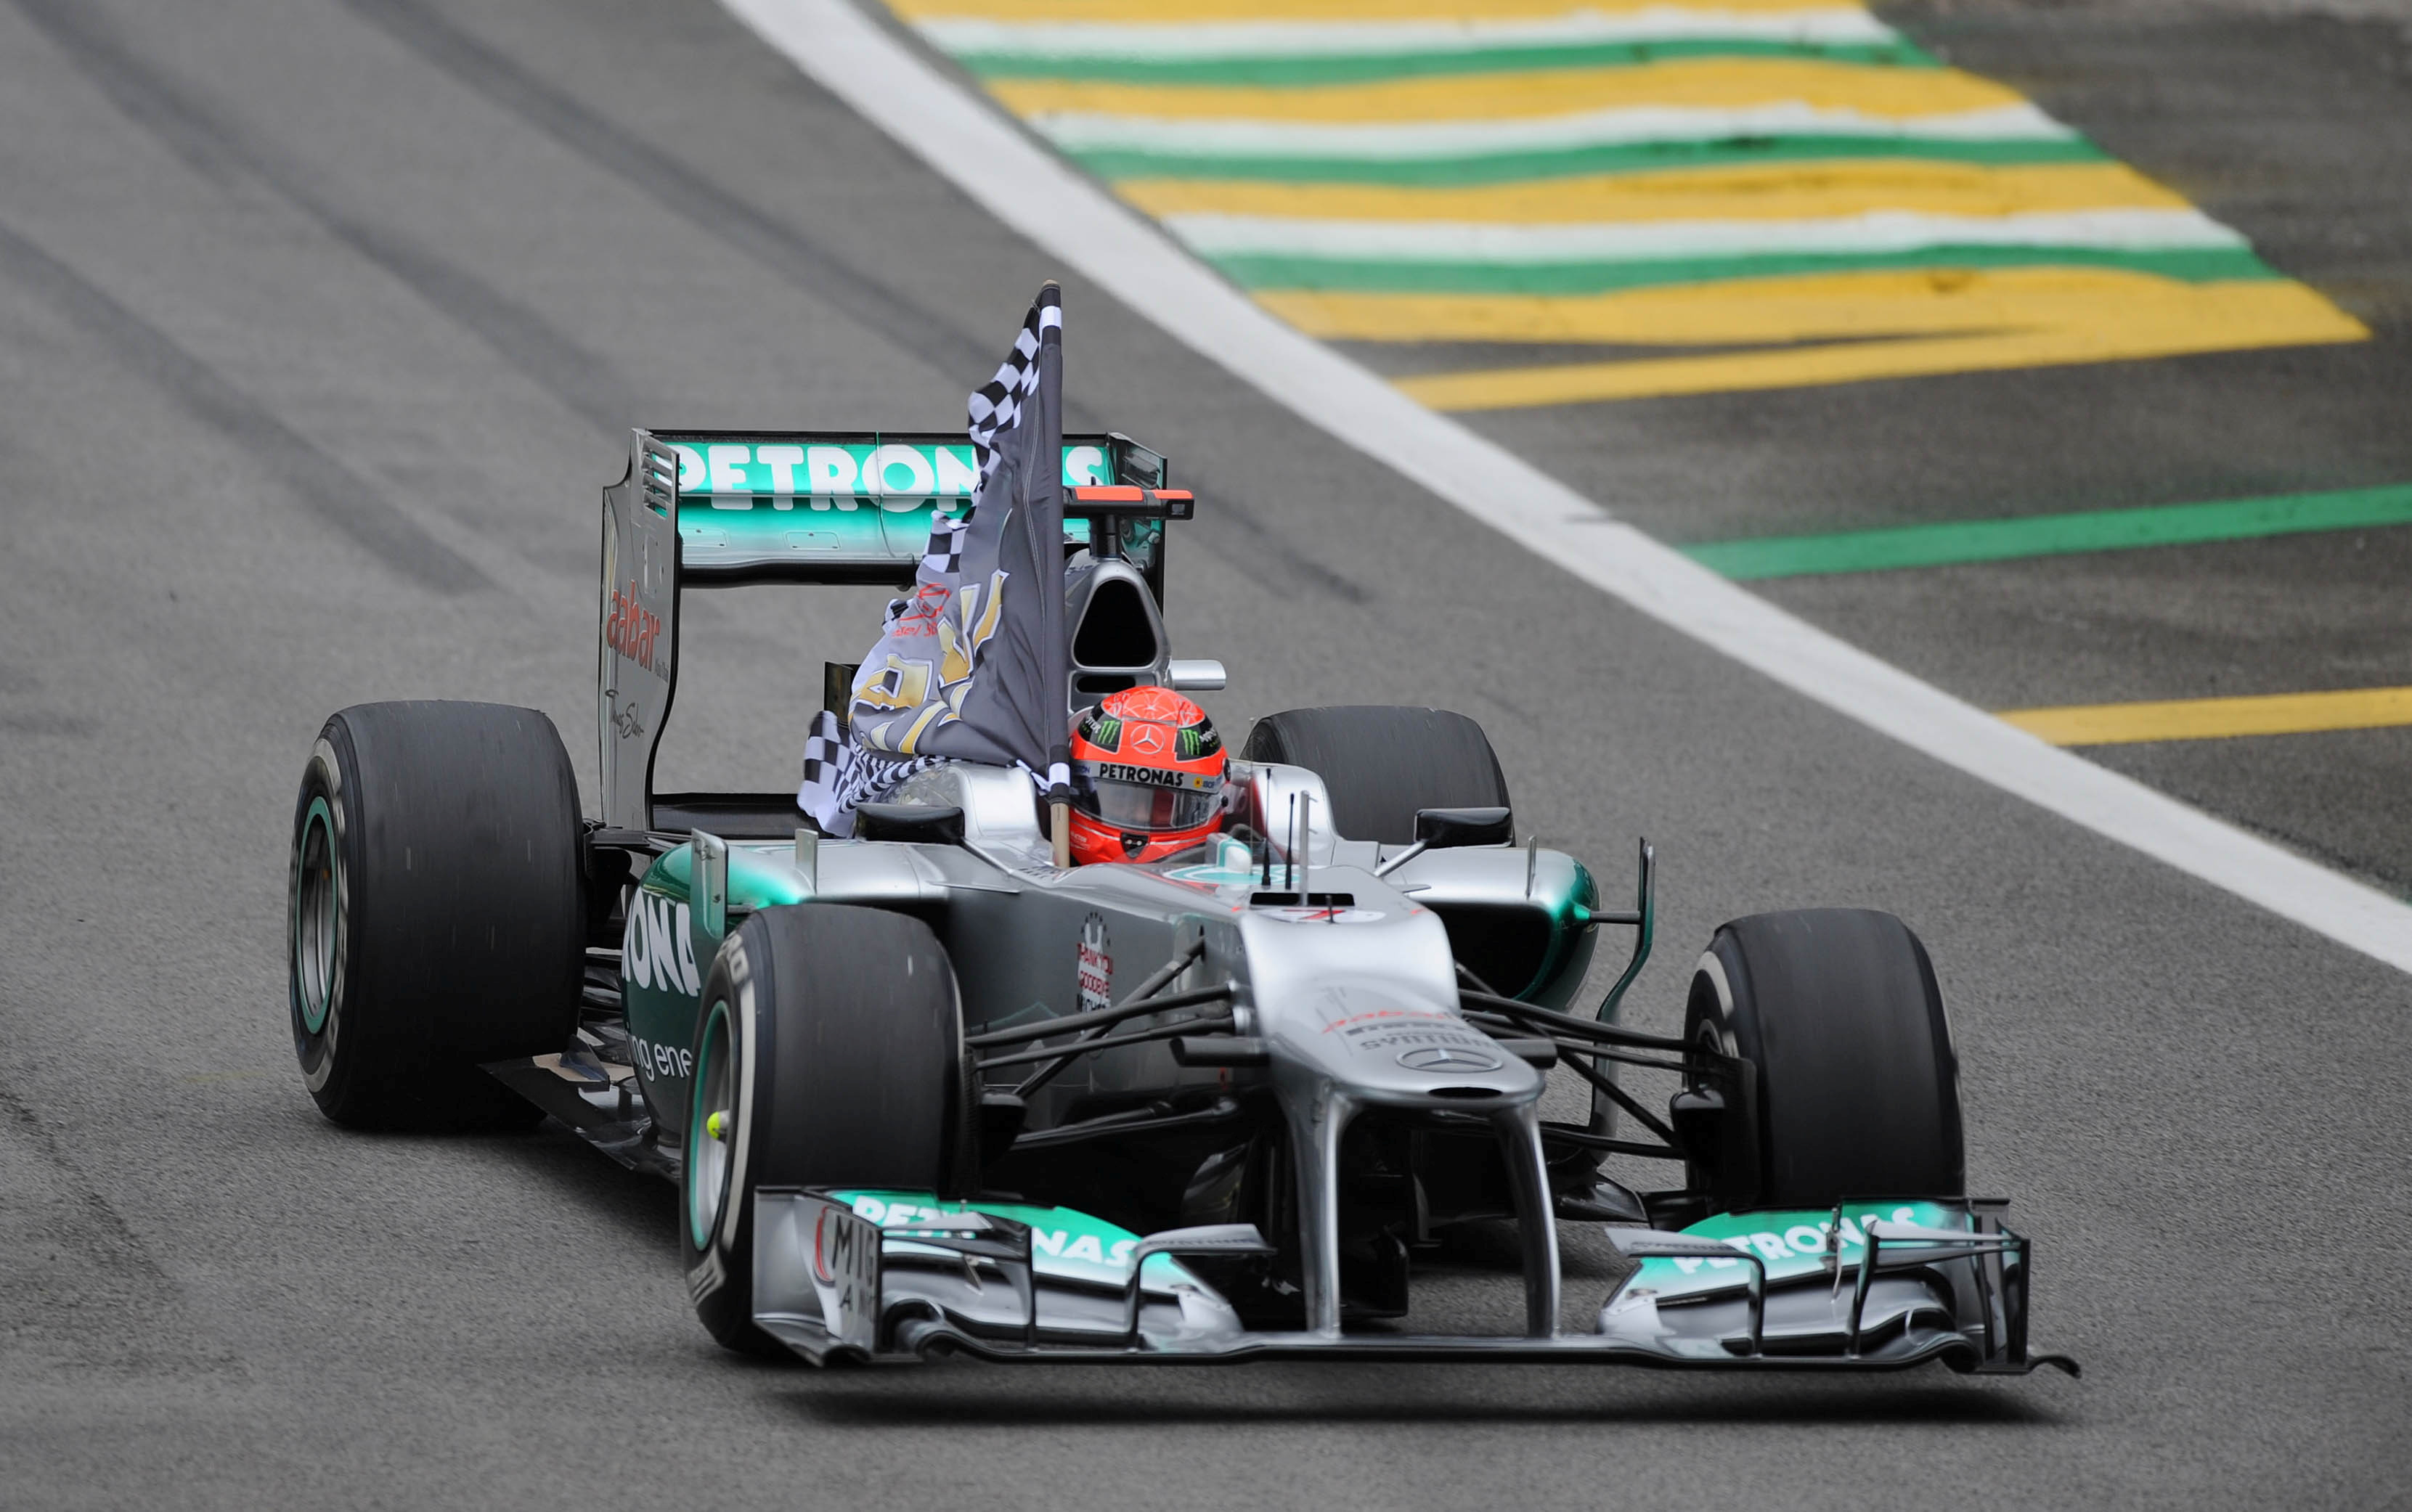 Formula One - F1 - Brazilian Grand Prix 2012 - Autodromo Jose Carlos Pace, Sao Paulo, Brazil  - 25/11/12   Mercedes' Michael Schumacher holds a flag after finishing his last f1 race   Mandatory Credit: Action Images / Crispin Thruston   Livepic